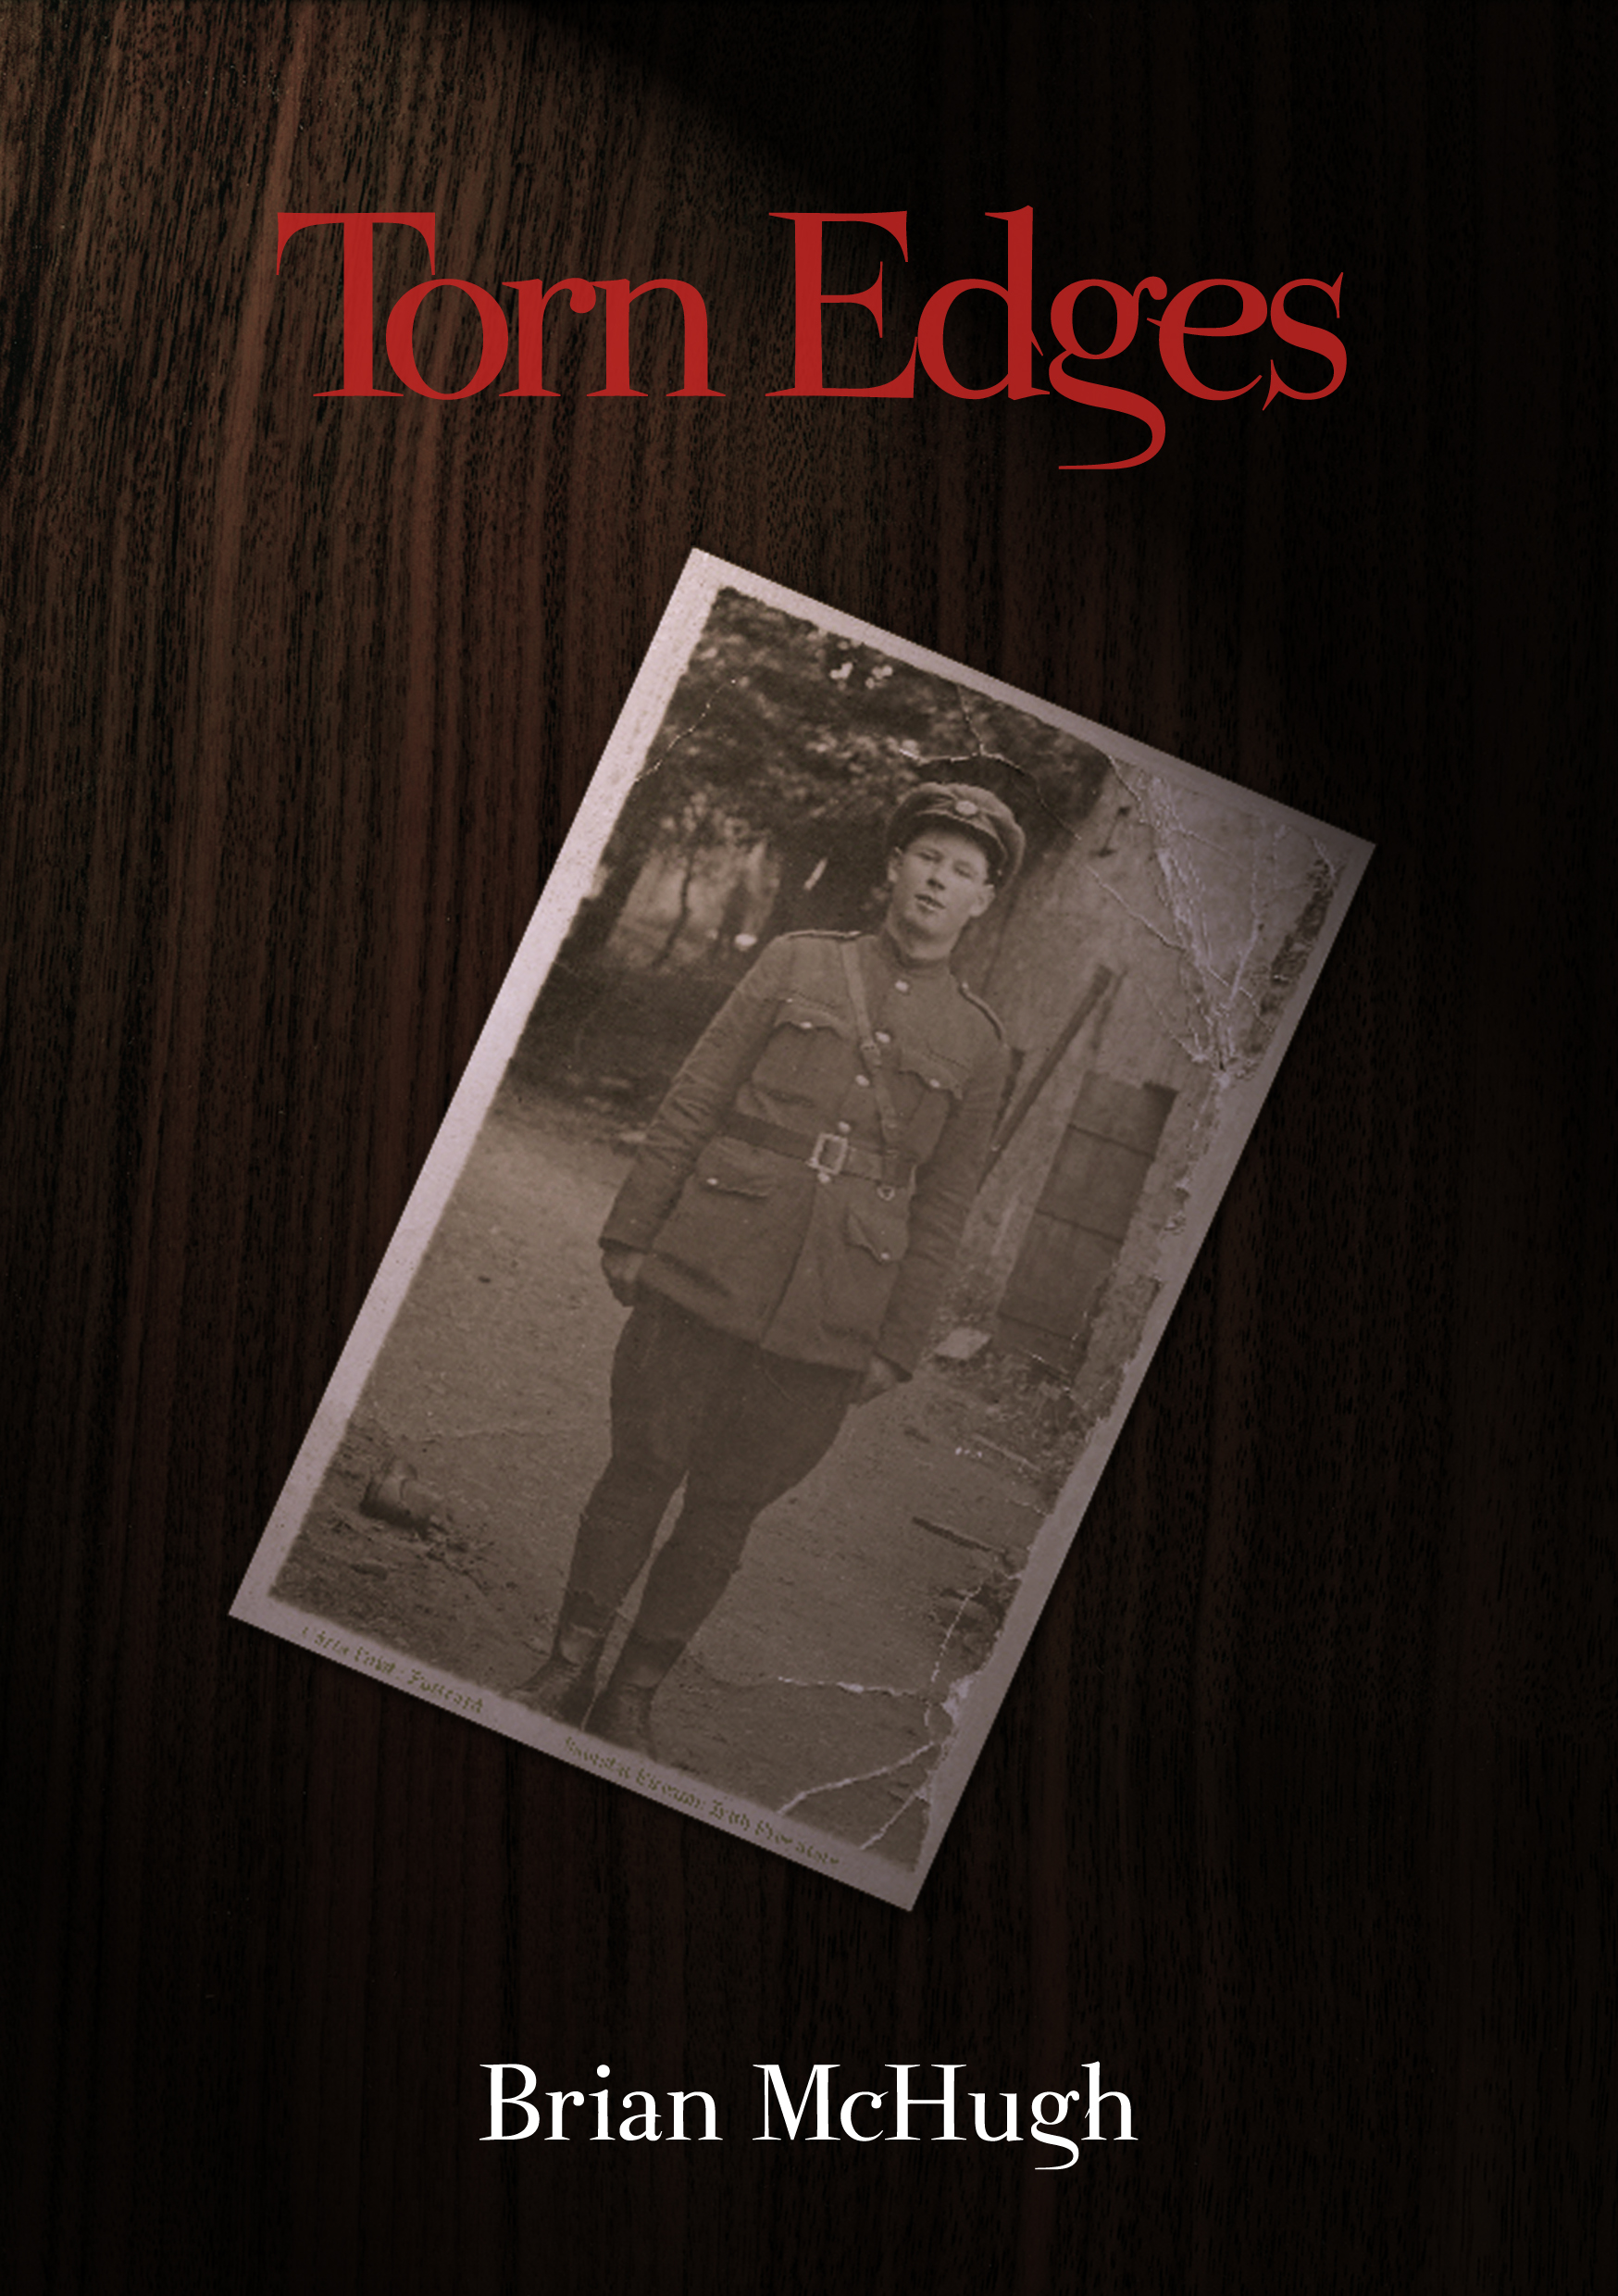 Torn Edges now available as an ebook